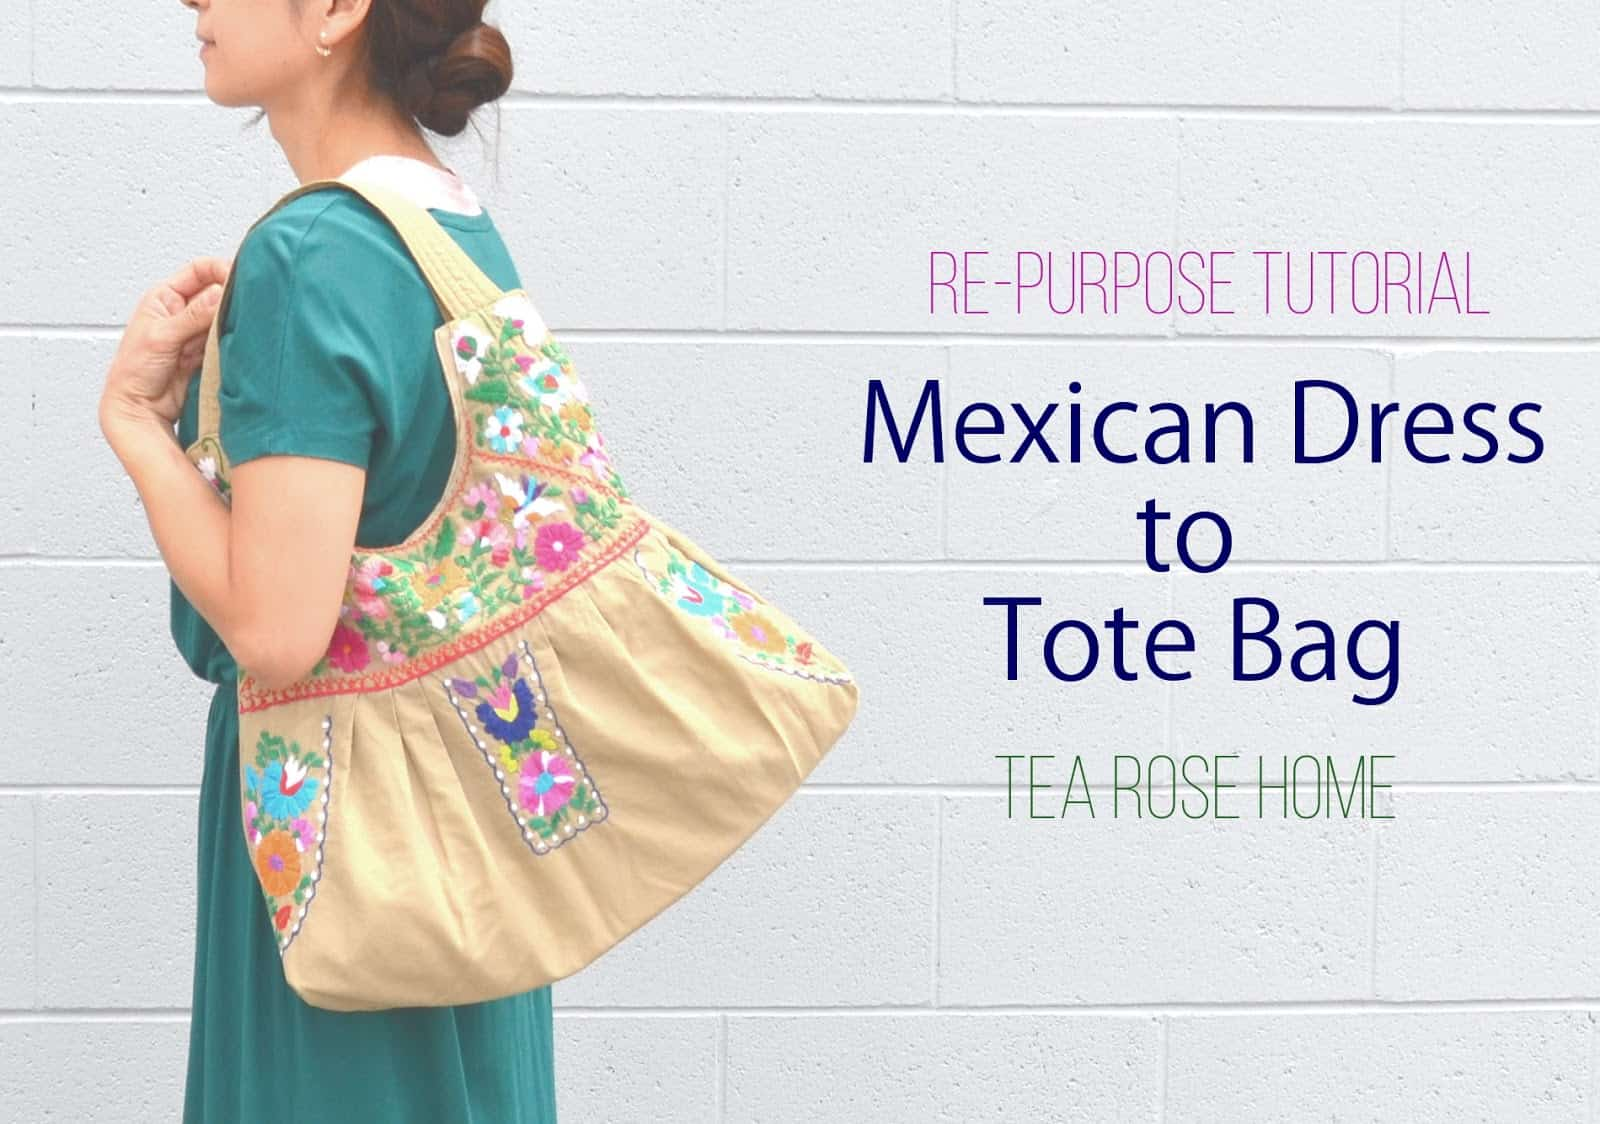 Mexican dress to tote bag